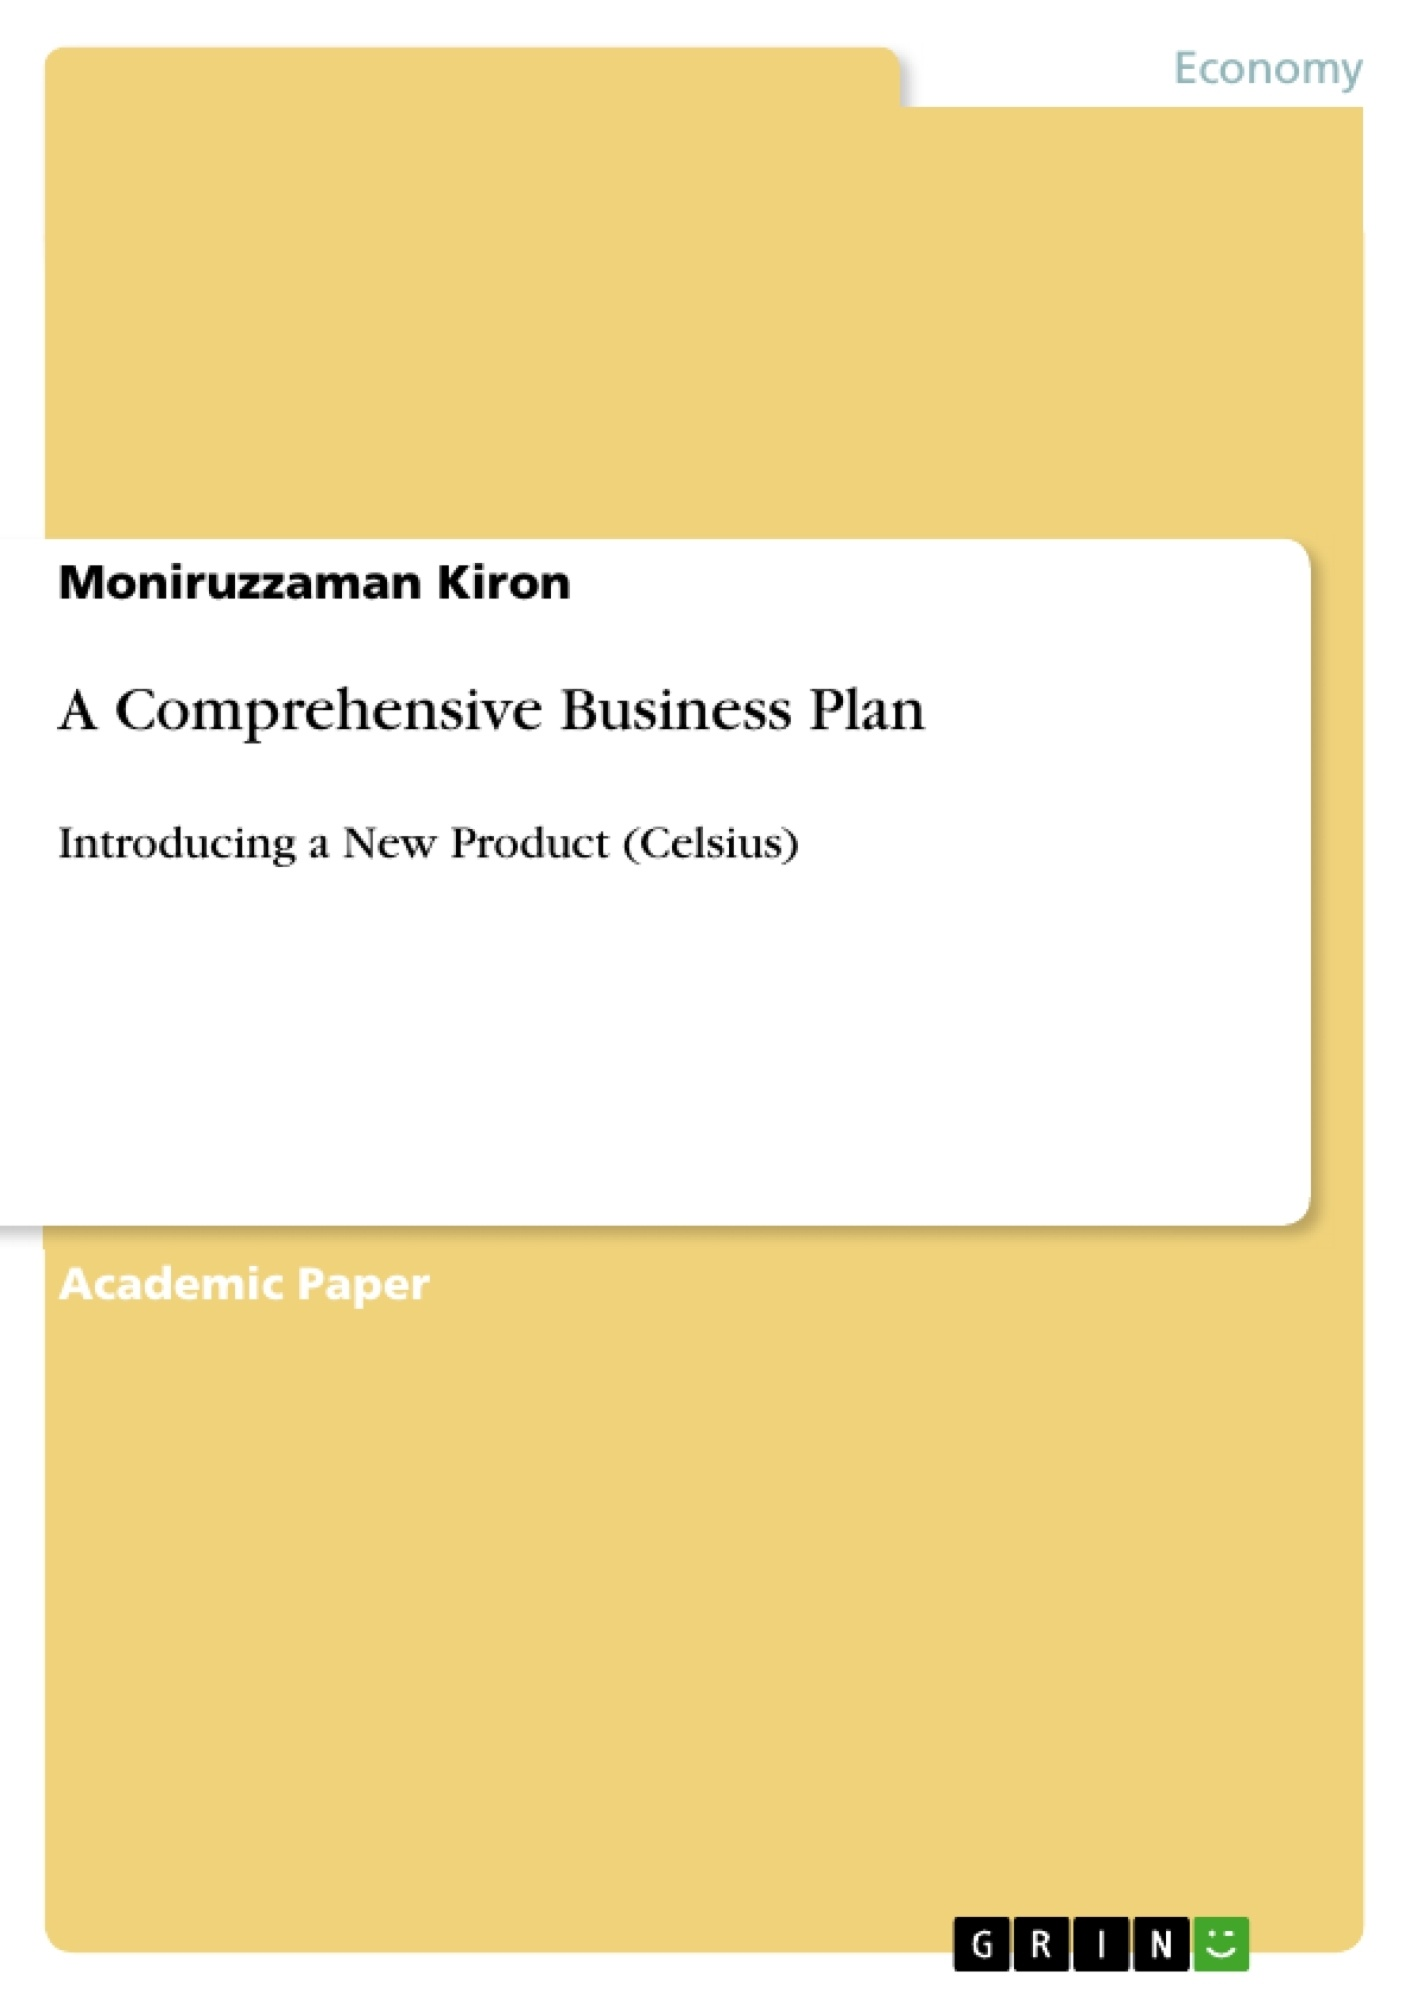 Title: A Comprehensive Business Plan